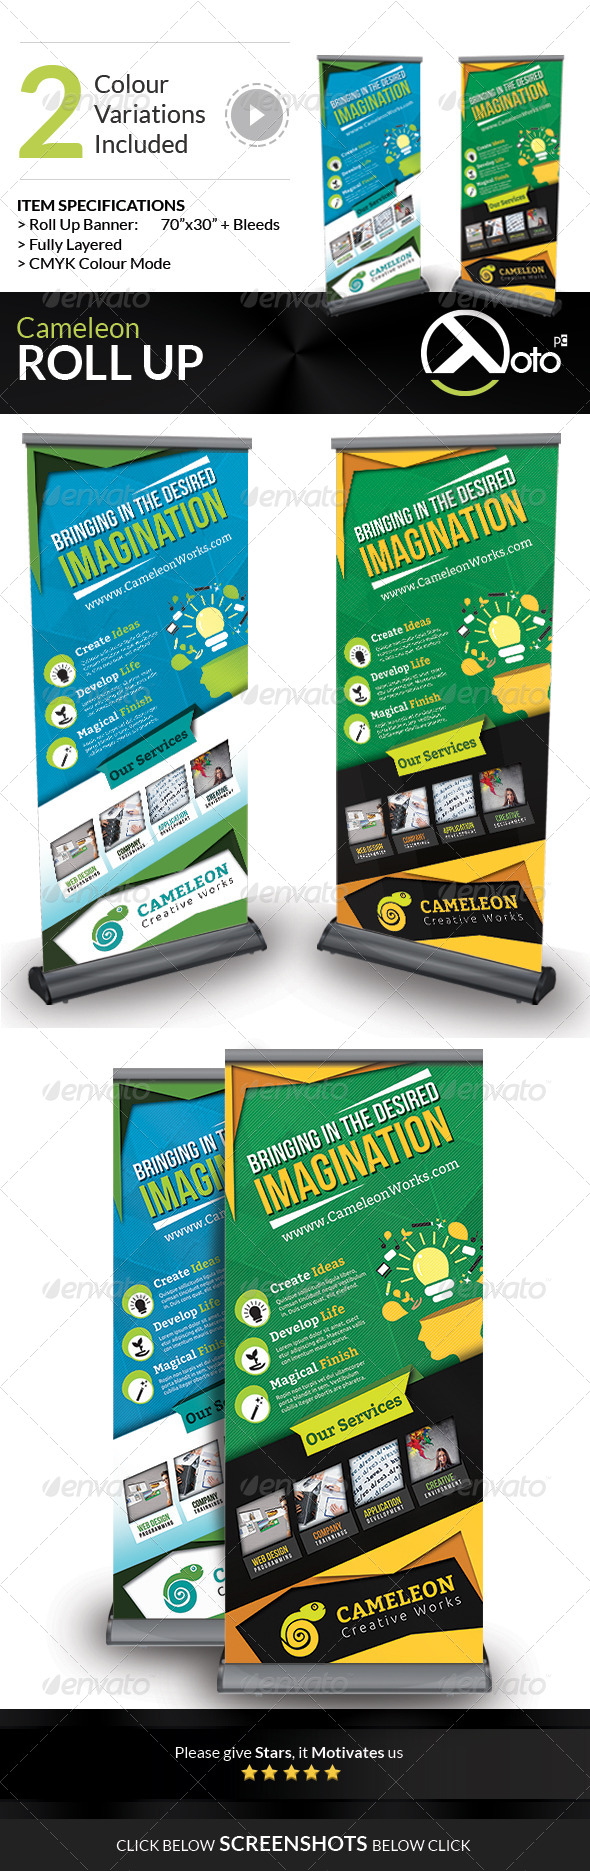 Cameleon Works Roll Up Banners - Signage Print Templates